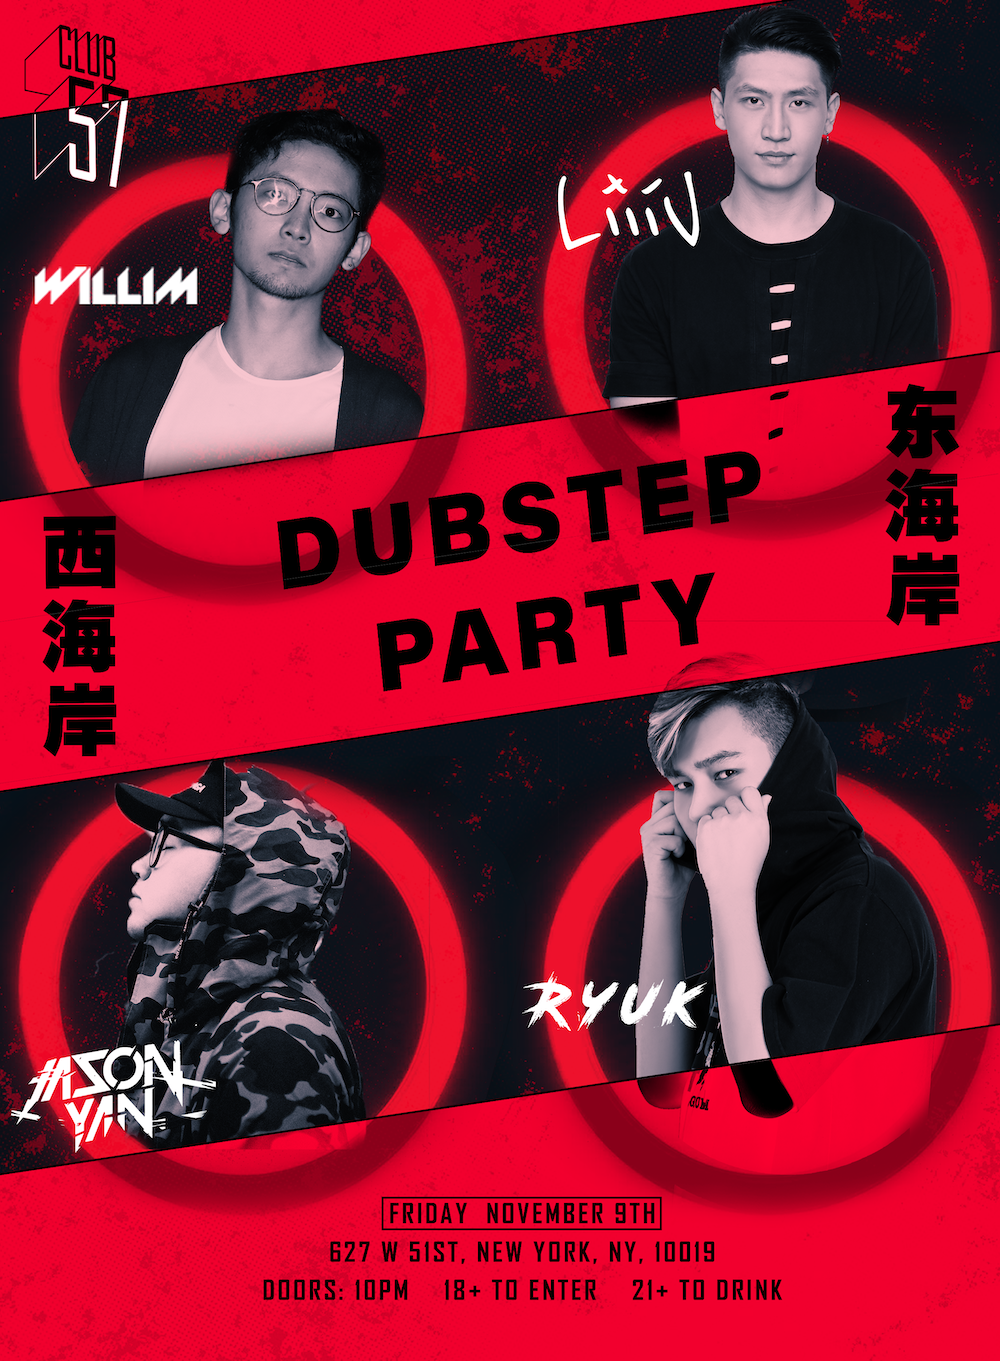 Dubstep Contest at Club 57  Nov. 9, 2018